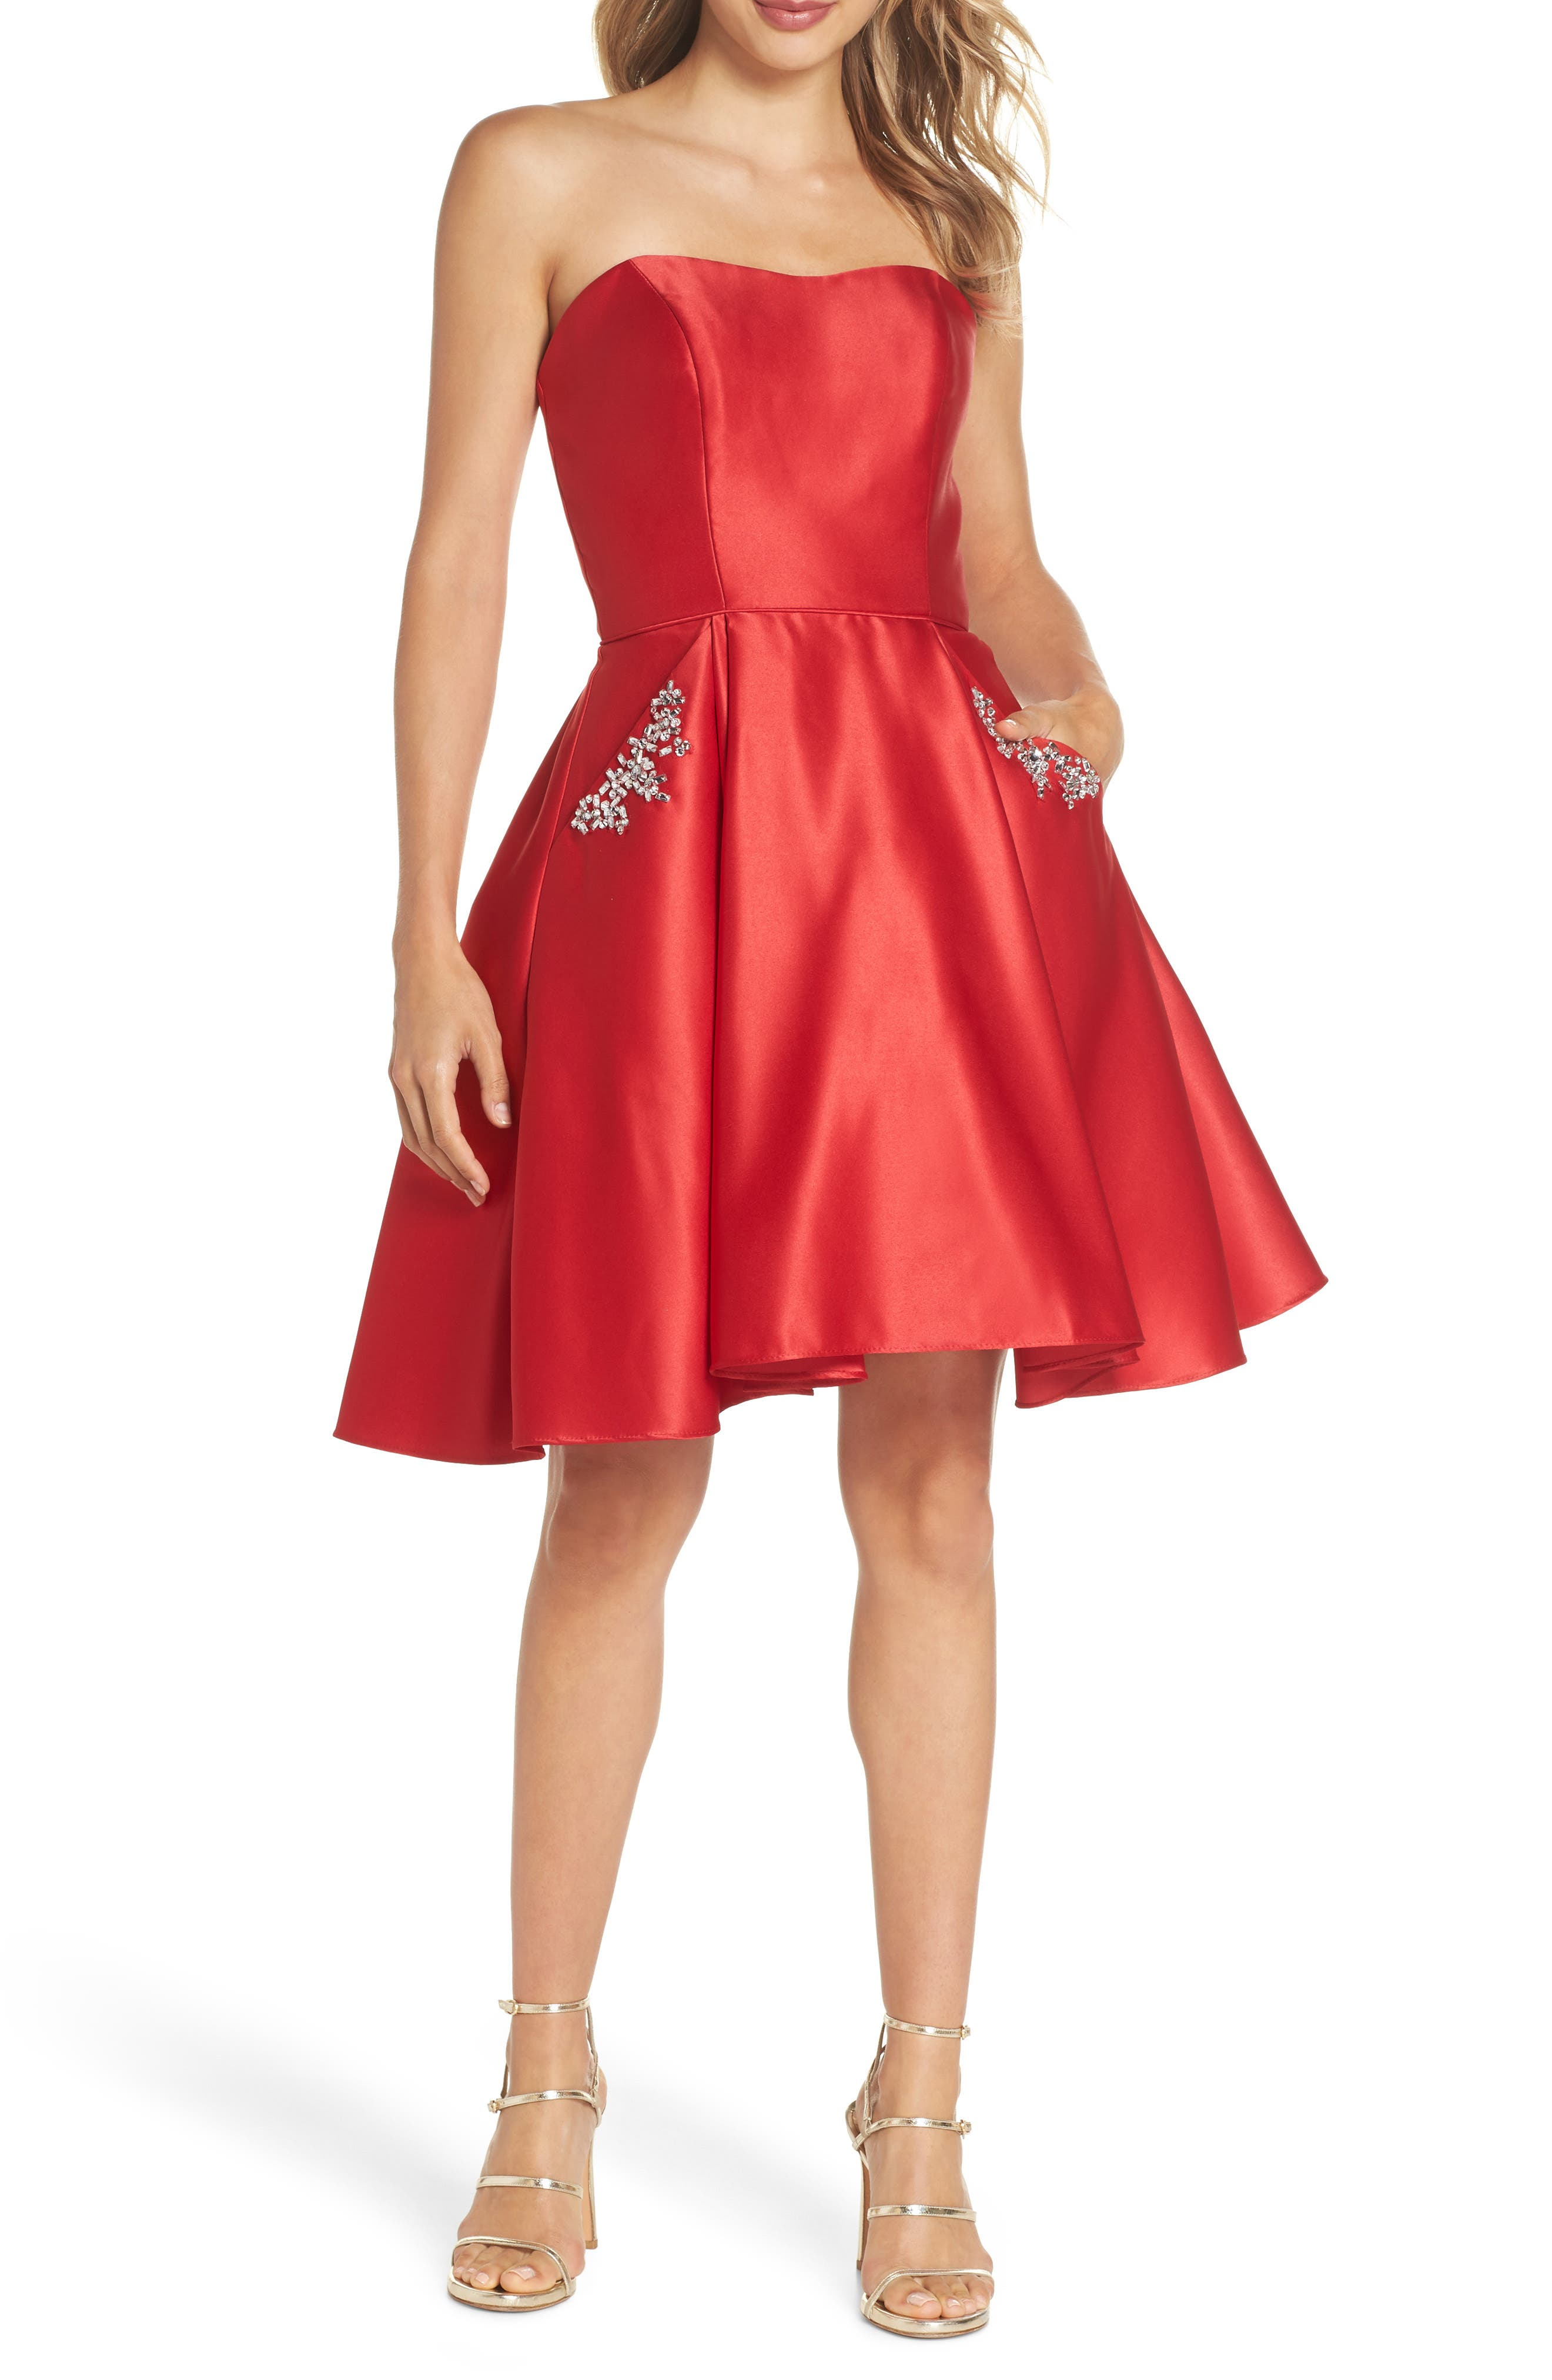 Blondie Nites Strapless Satin Fit & Flare Party Dress, Red